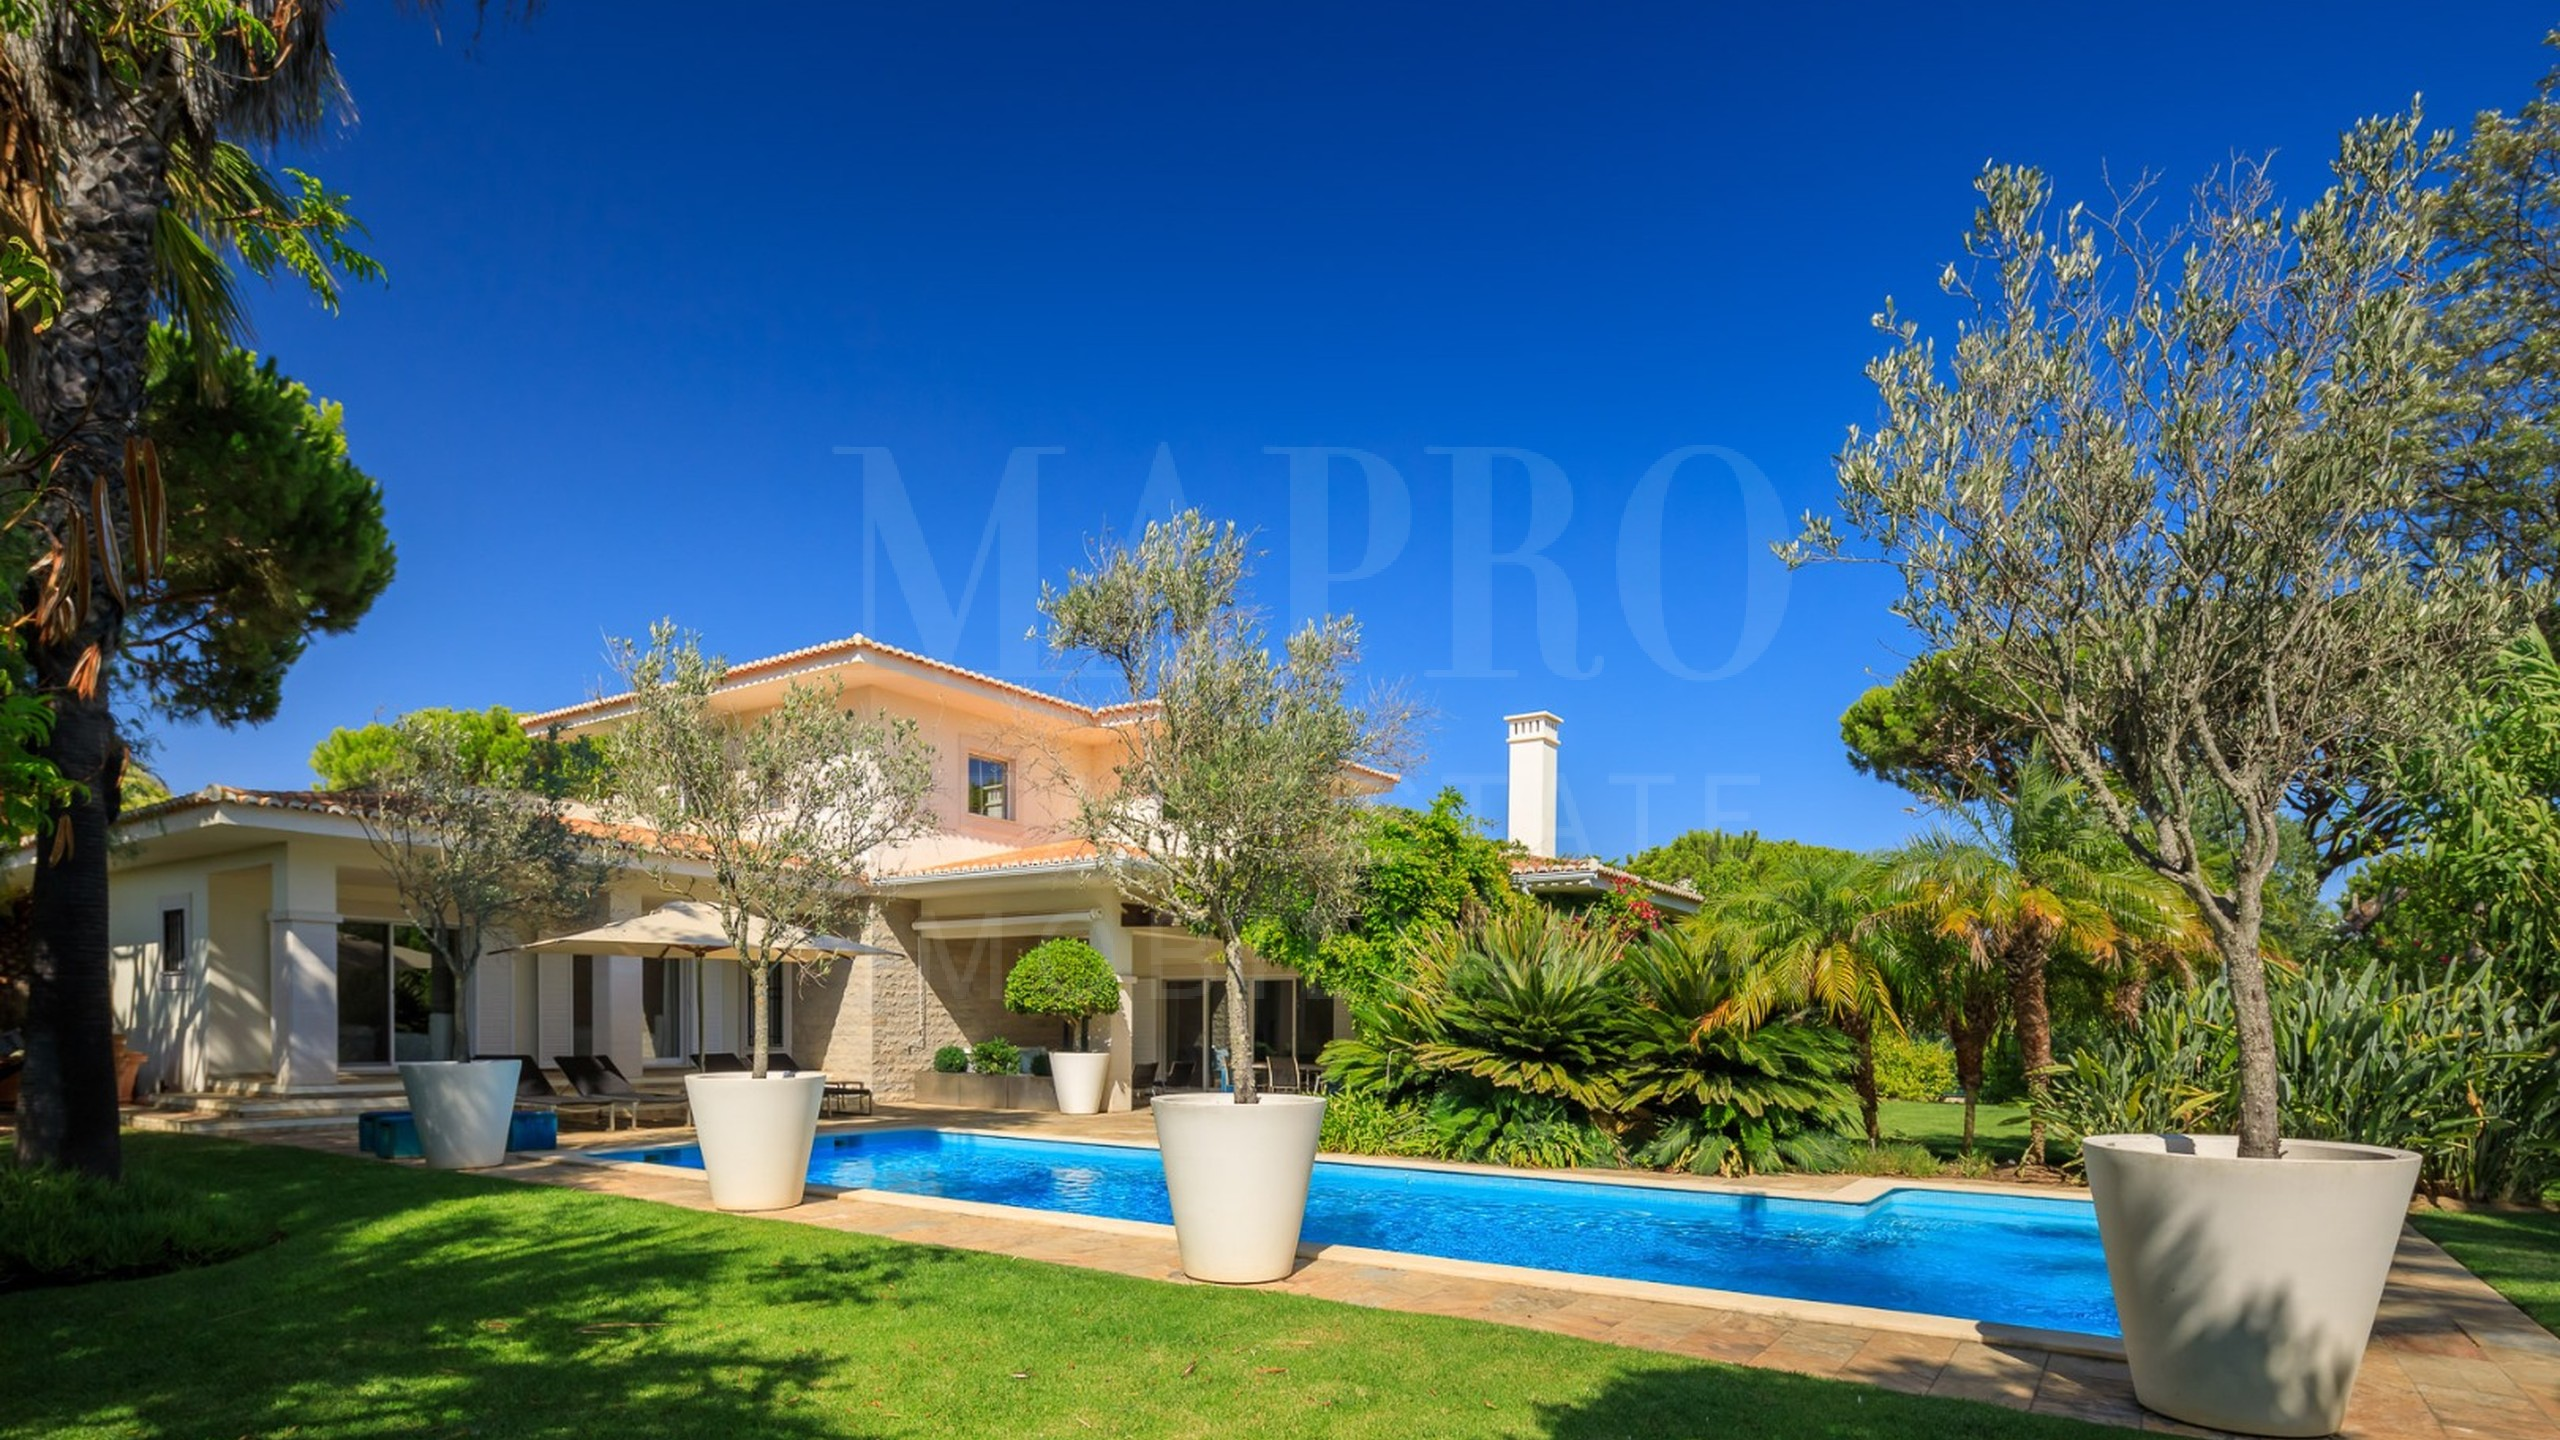 South facing villa situated within the quiet Vilas Alvas development in Algarve